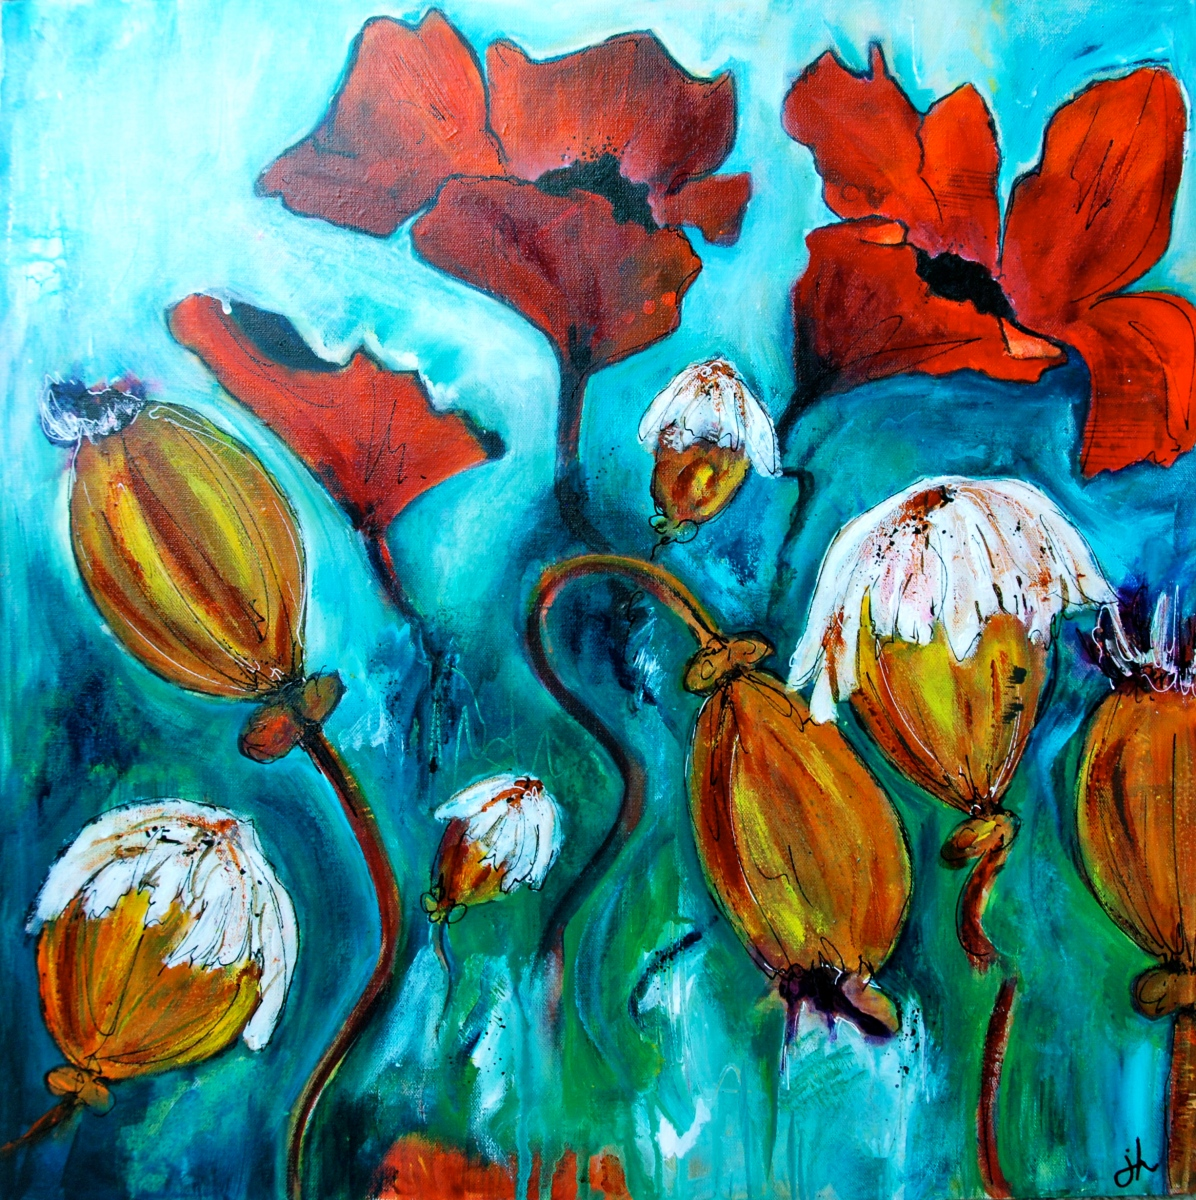 acrylic paint, intuitive painting, flora bowley, art,